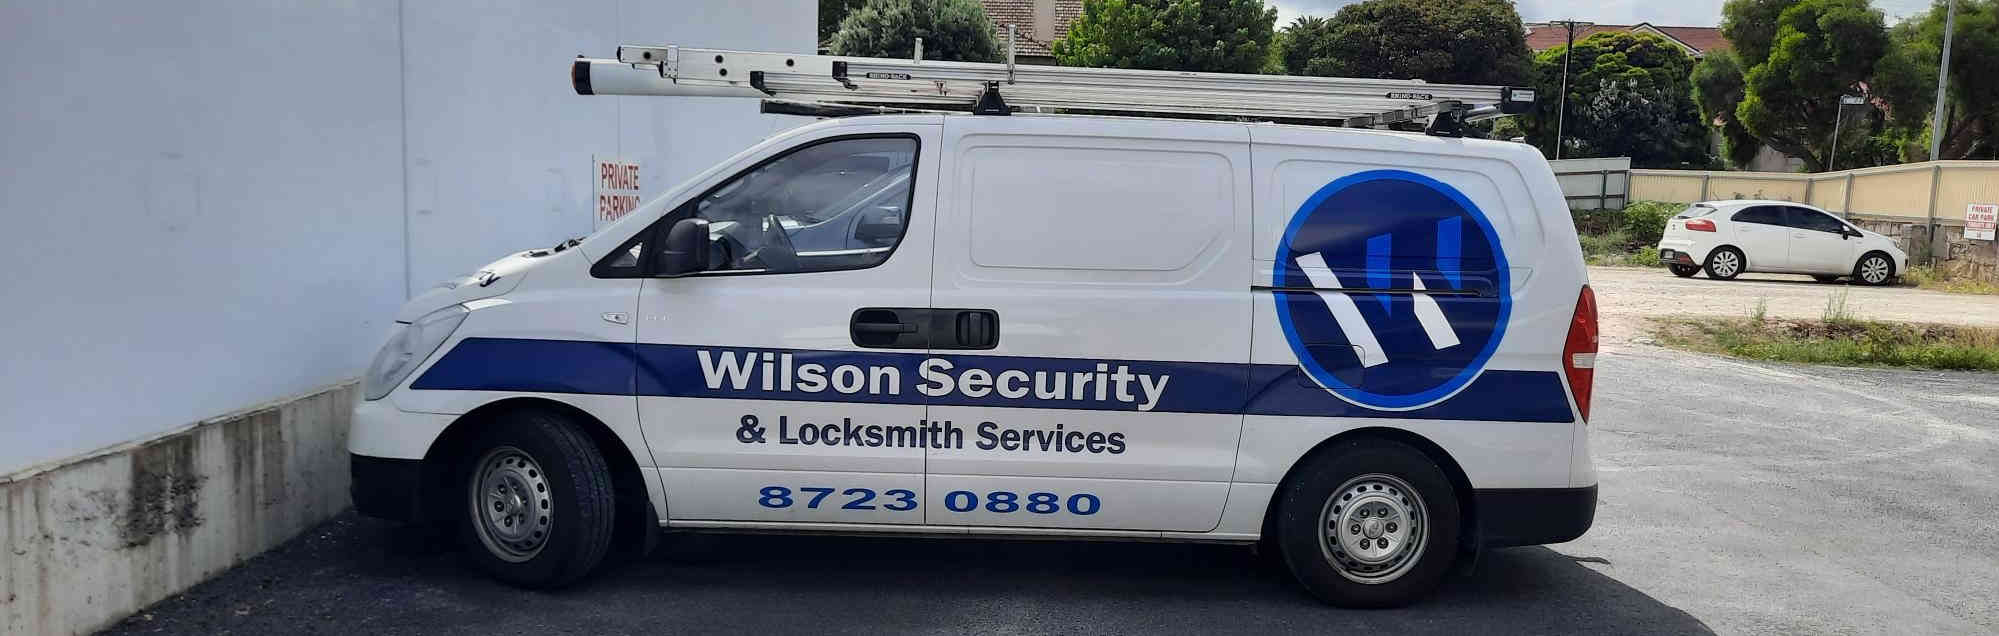 Technician van- Wilson Secuurity & Locksmith Services